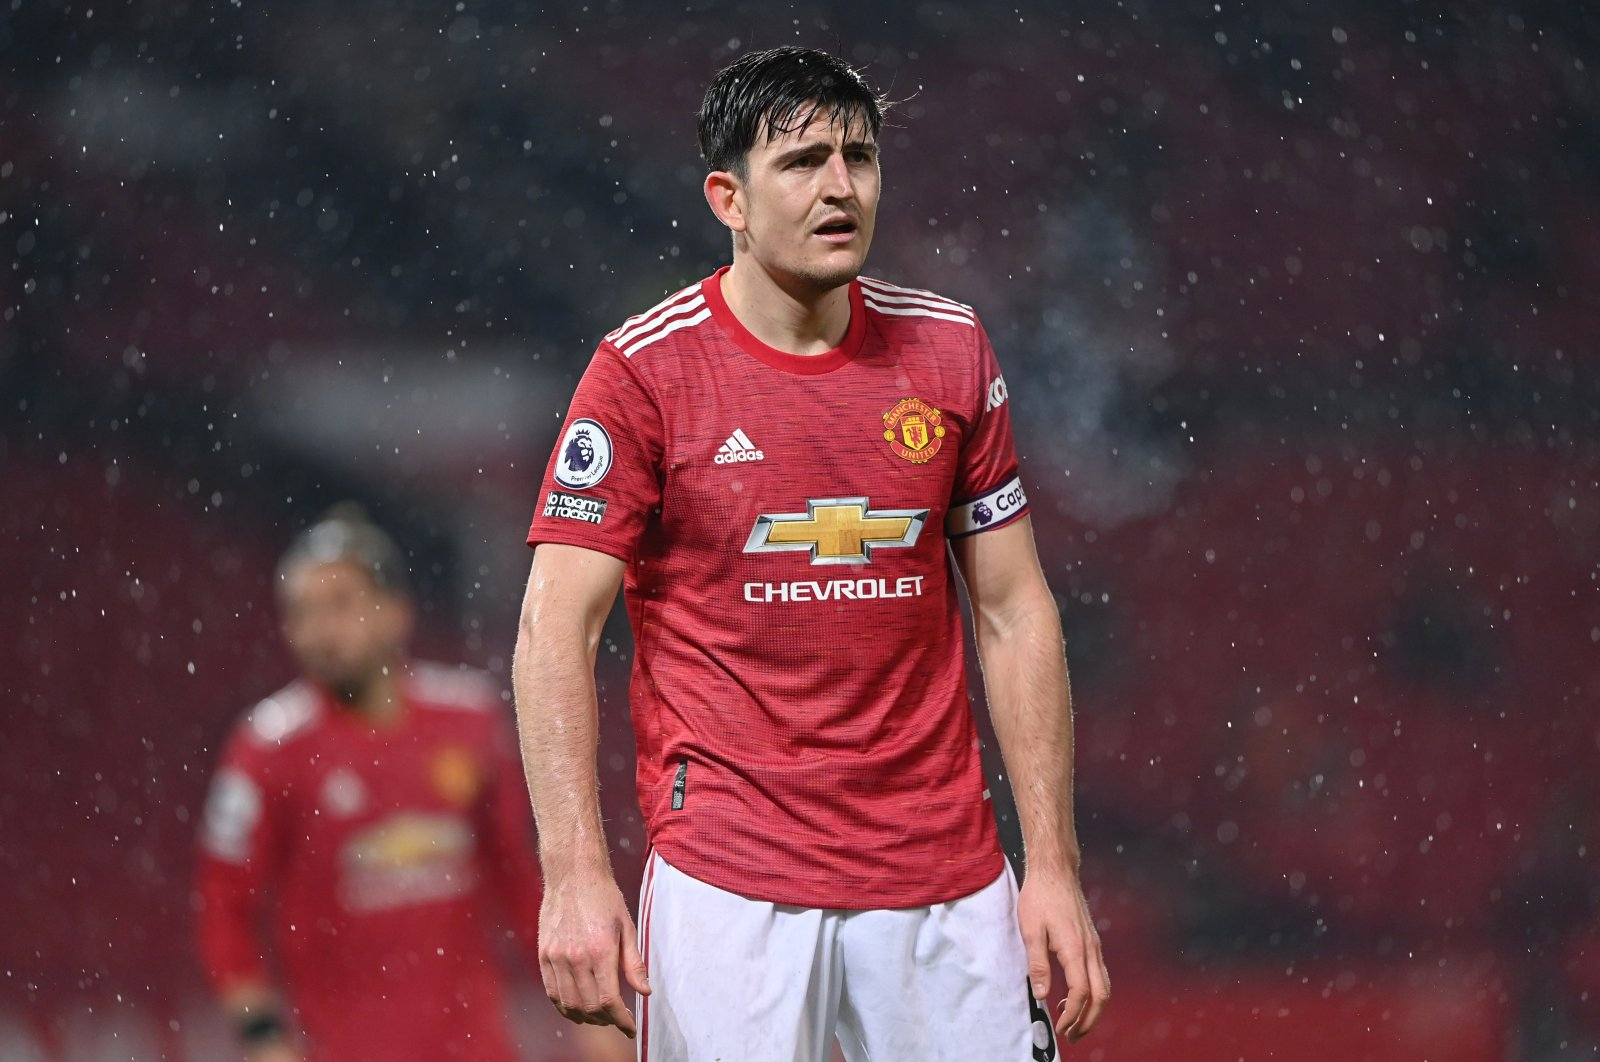 Manchester United's Harry Maguire looks dejected after a loss against Sheffield United, Manchester, England, Jan. 27, 2021.